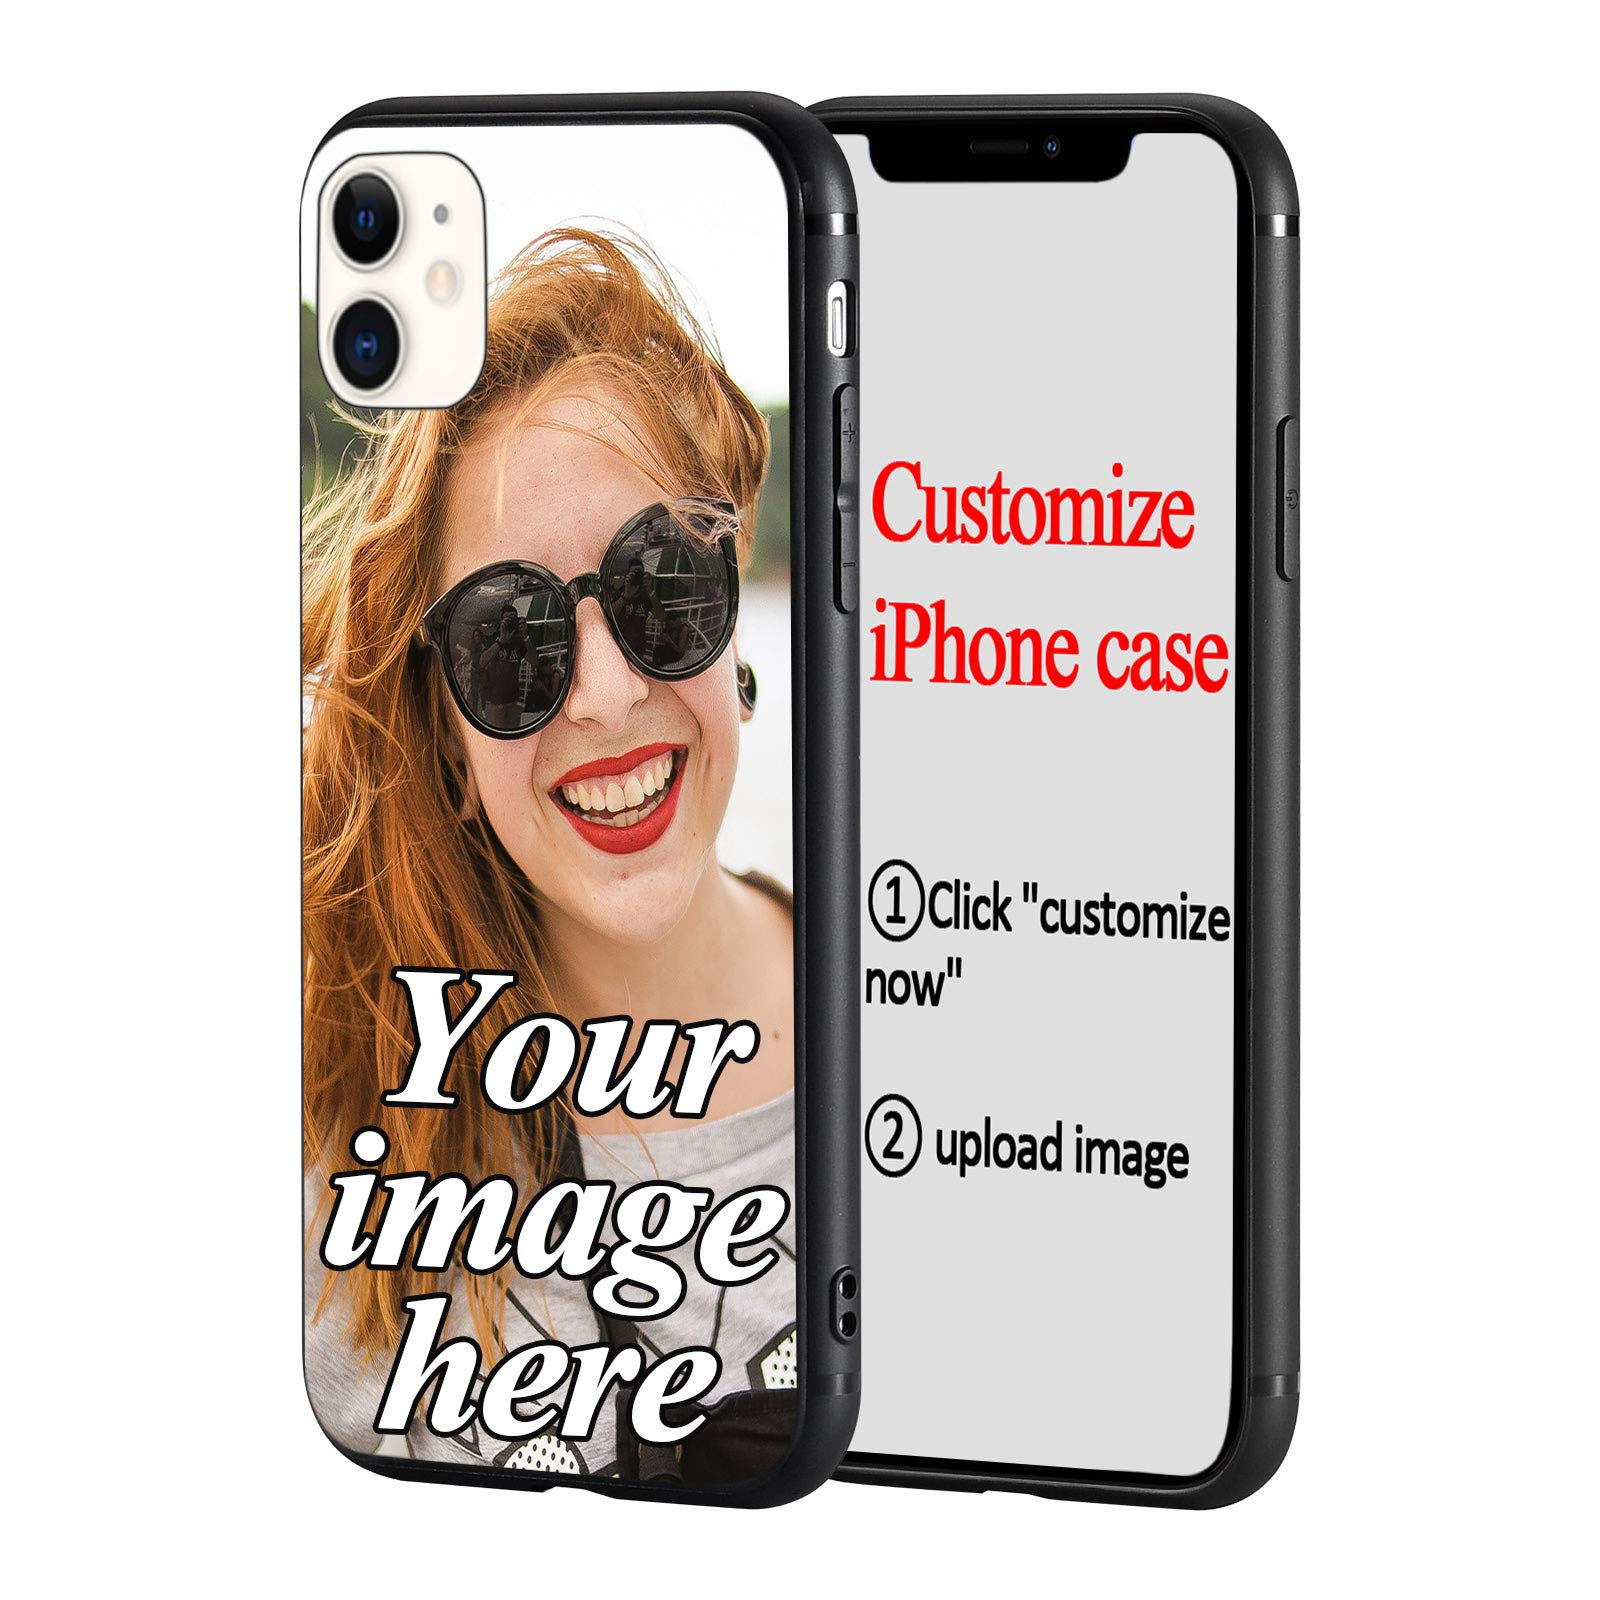 Custom Phone Case for iPhone 11, Personalized Customized Photo Soft Phone Case Compatible with iPhone 11, DIY Create Your Own Photo Picture Design Custom Case for iPhone 11